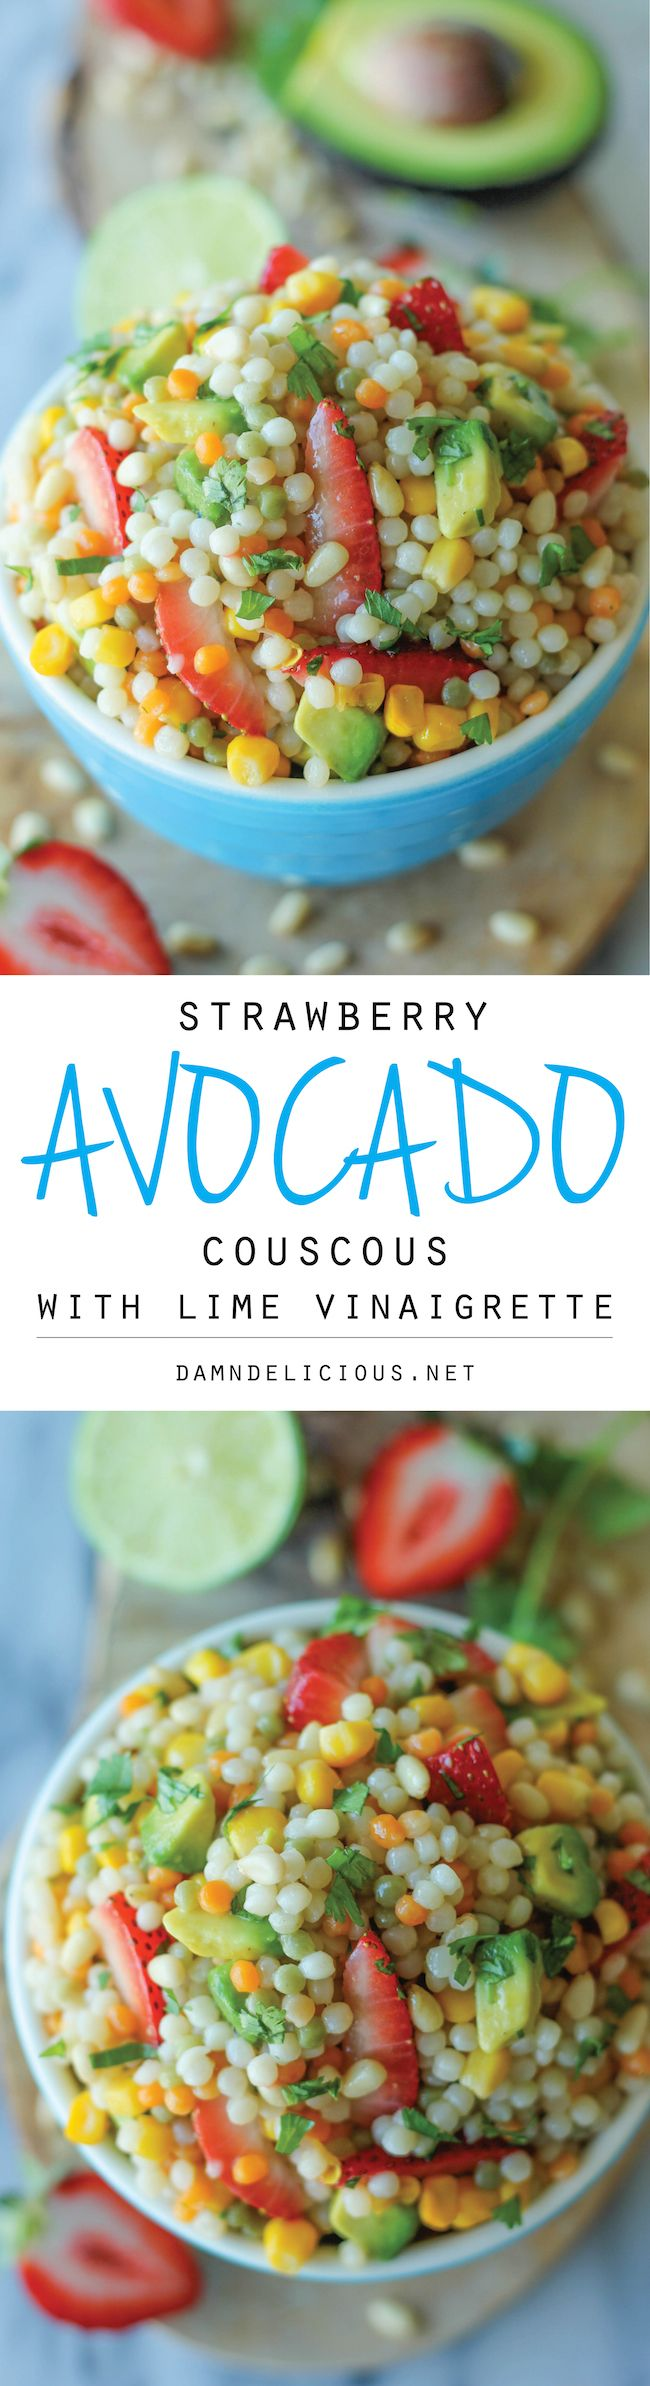 Strawberry Avocado Couscous Salad with Lime Vinaigrette - With a refreshing vinaigrette and fresh produce, this makes for a perfect salad!